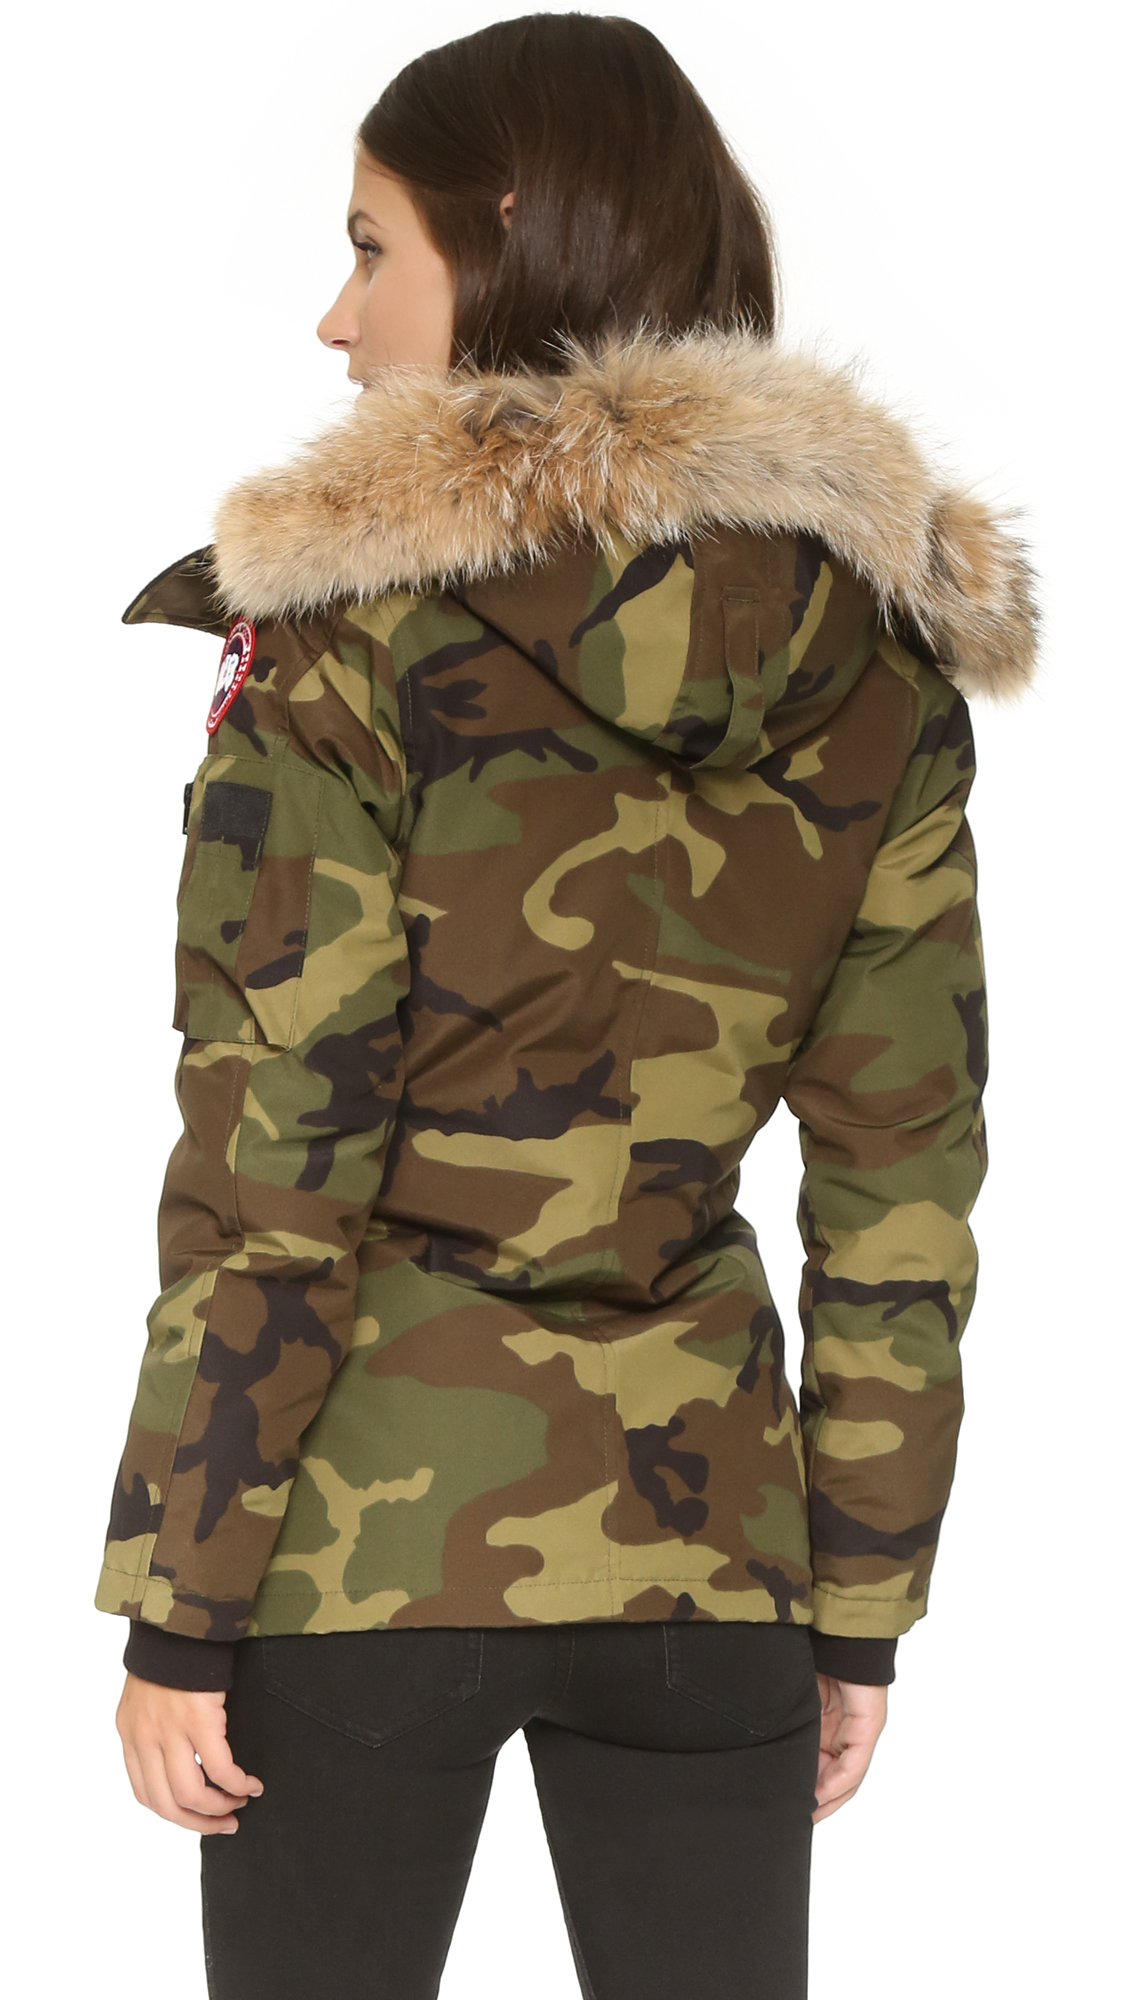 Comparing Canada Goose: Langford vs. Emory | The SL Blog